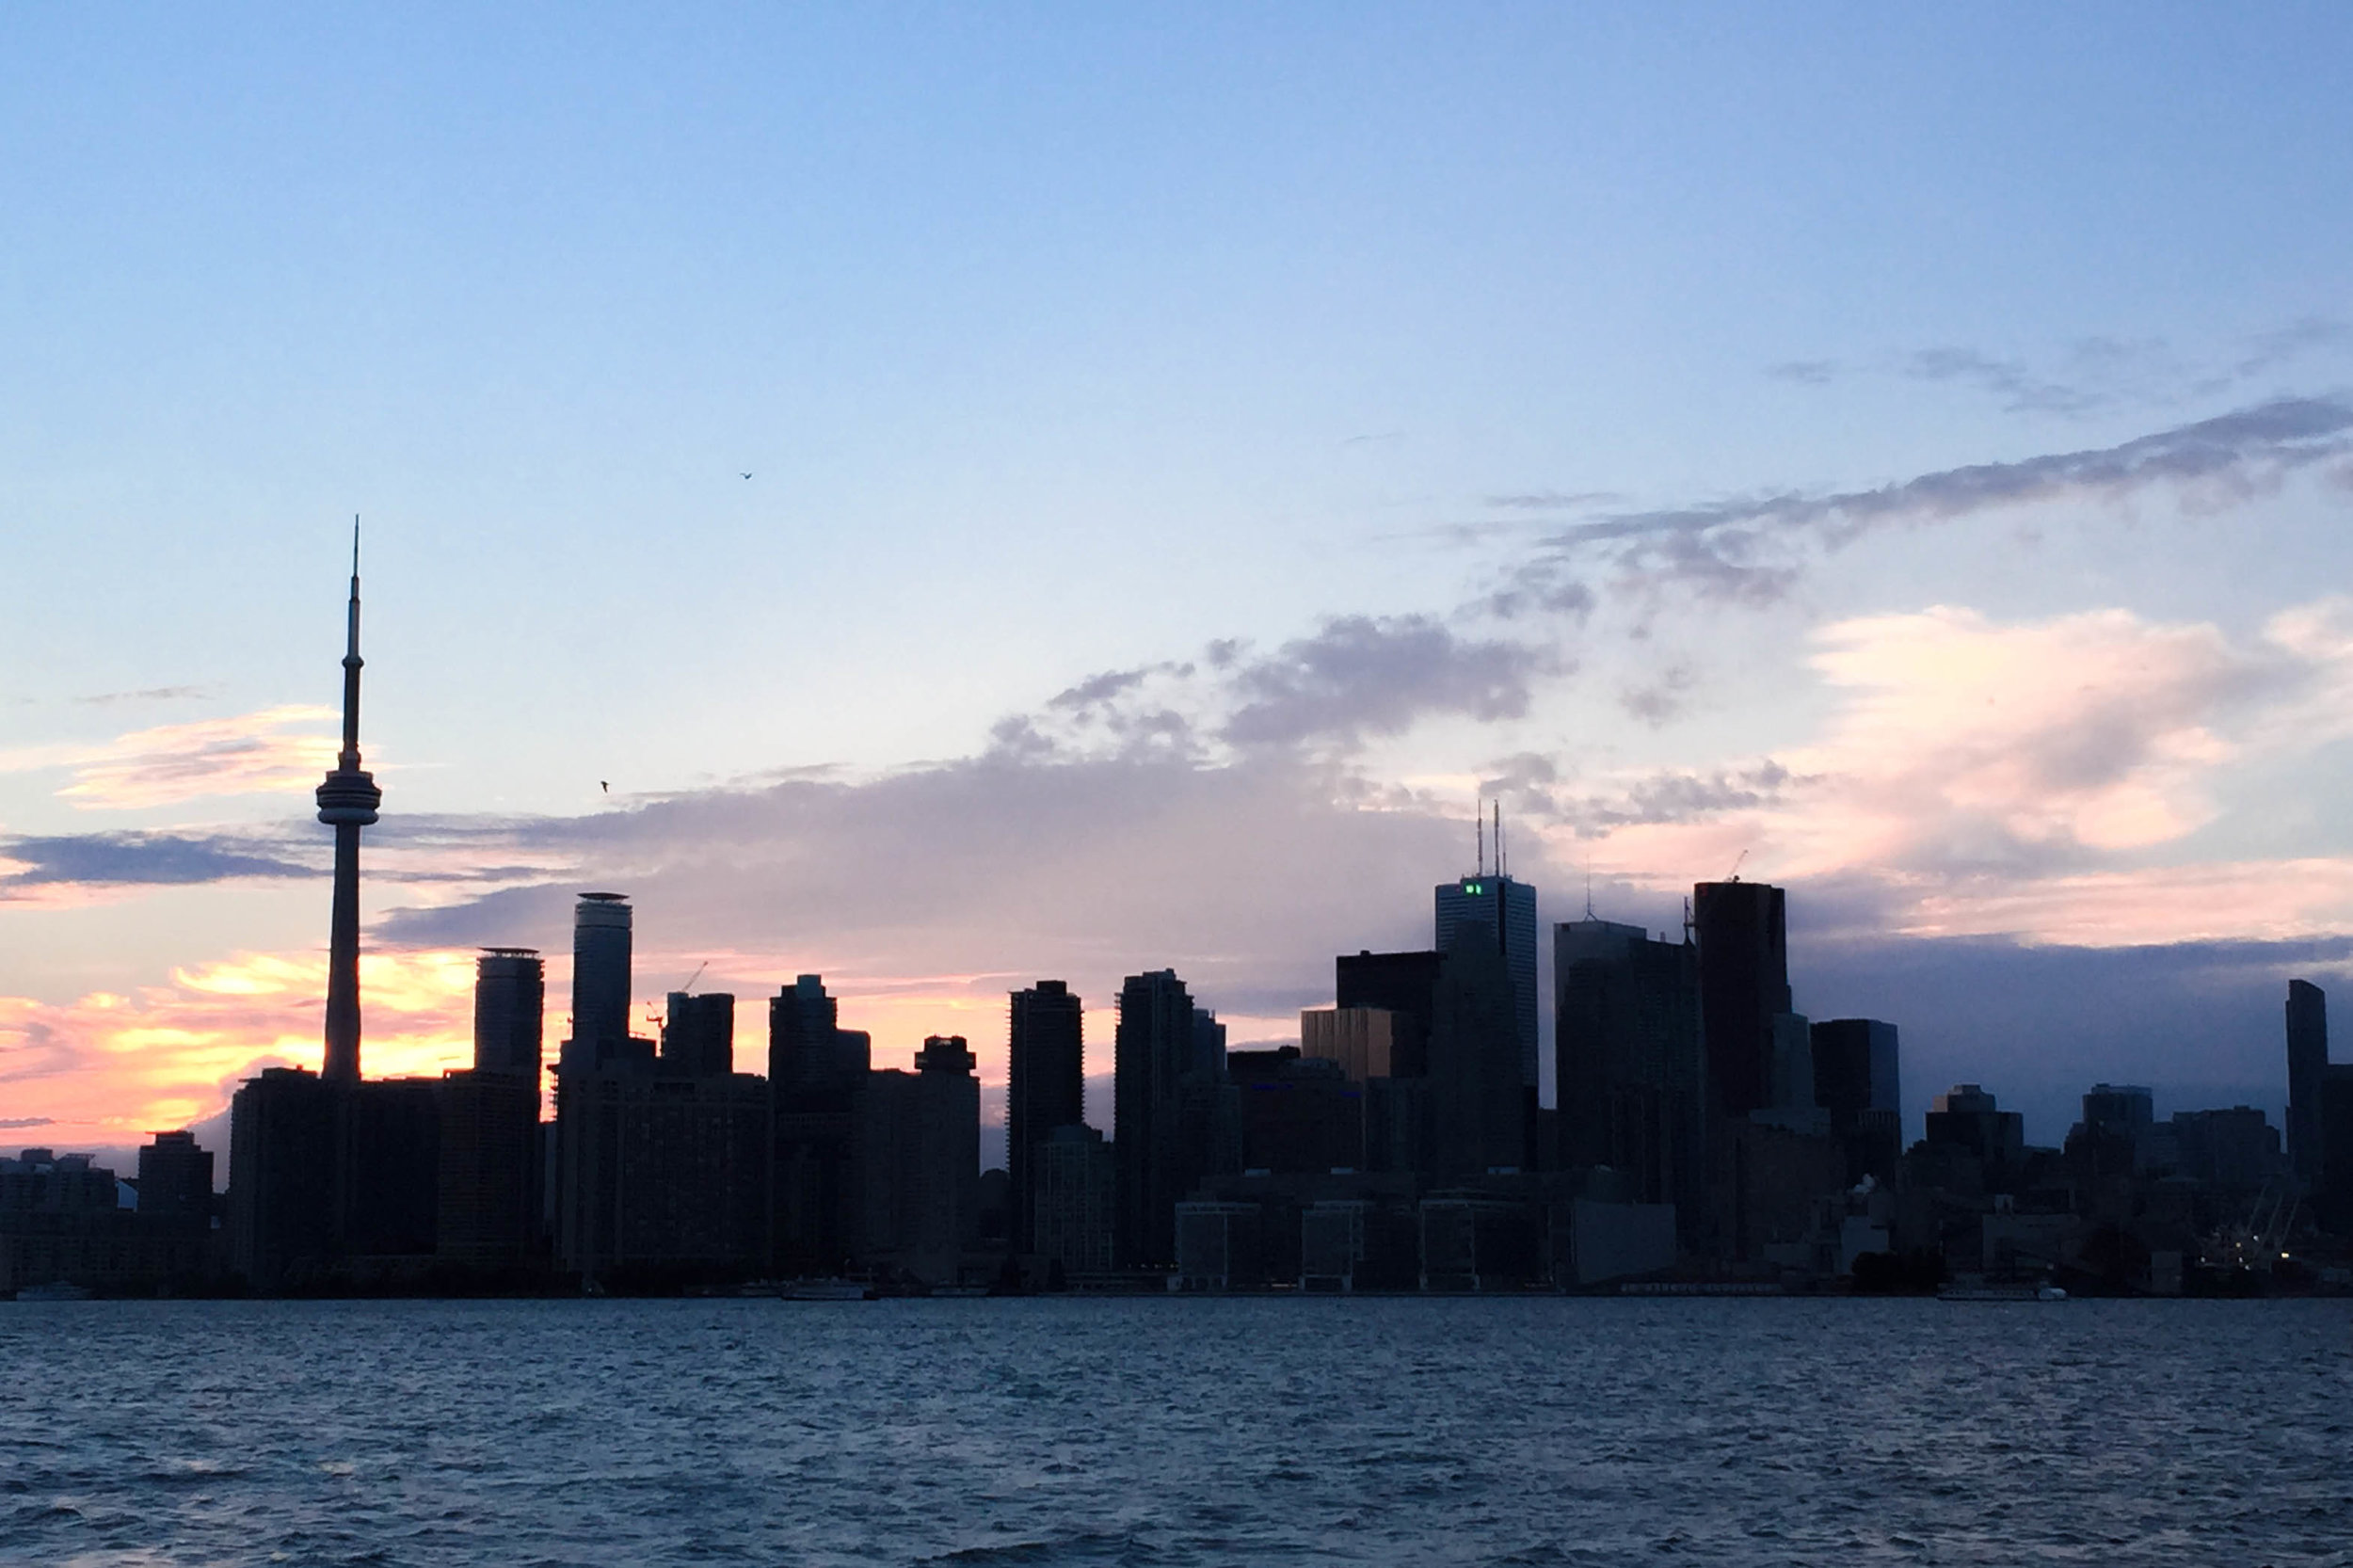 The best view of Toronto's skyline is from a ferry on Lake Ontario en route to the Toronto Islands